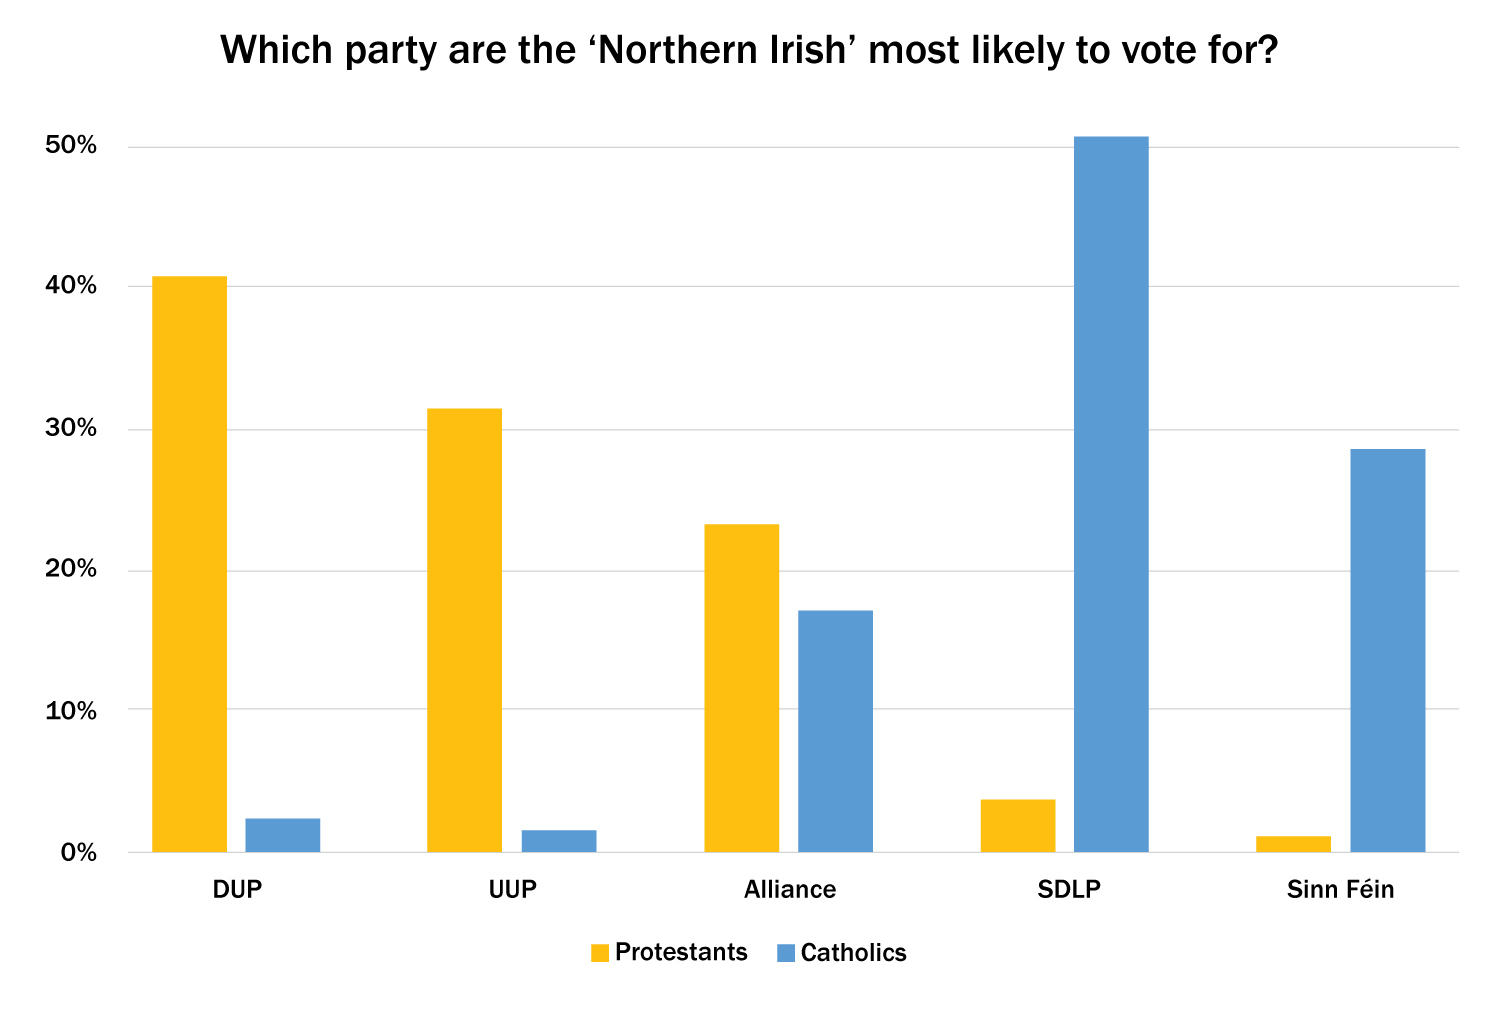 Figure 4: Showing the party preferences among Catholic and Protestant Northern Irish identifiers only (Ipsos, 2015).